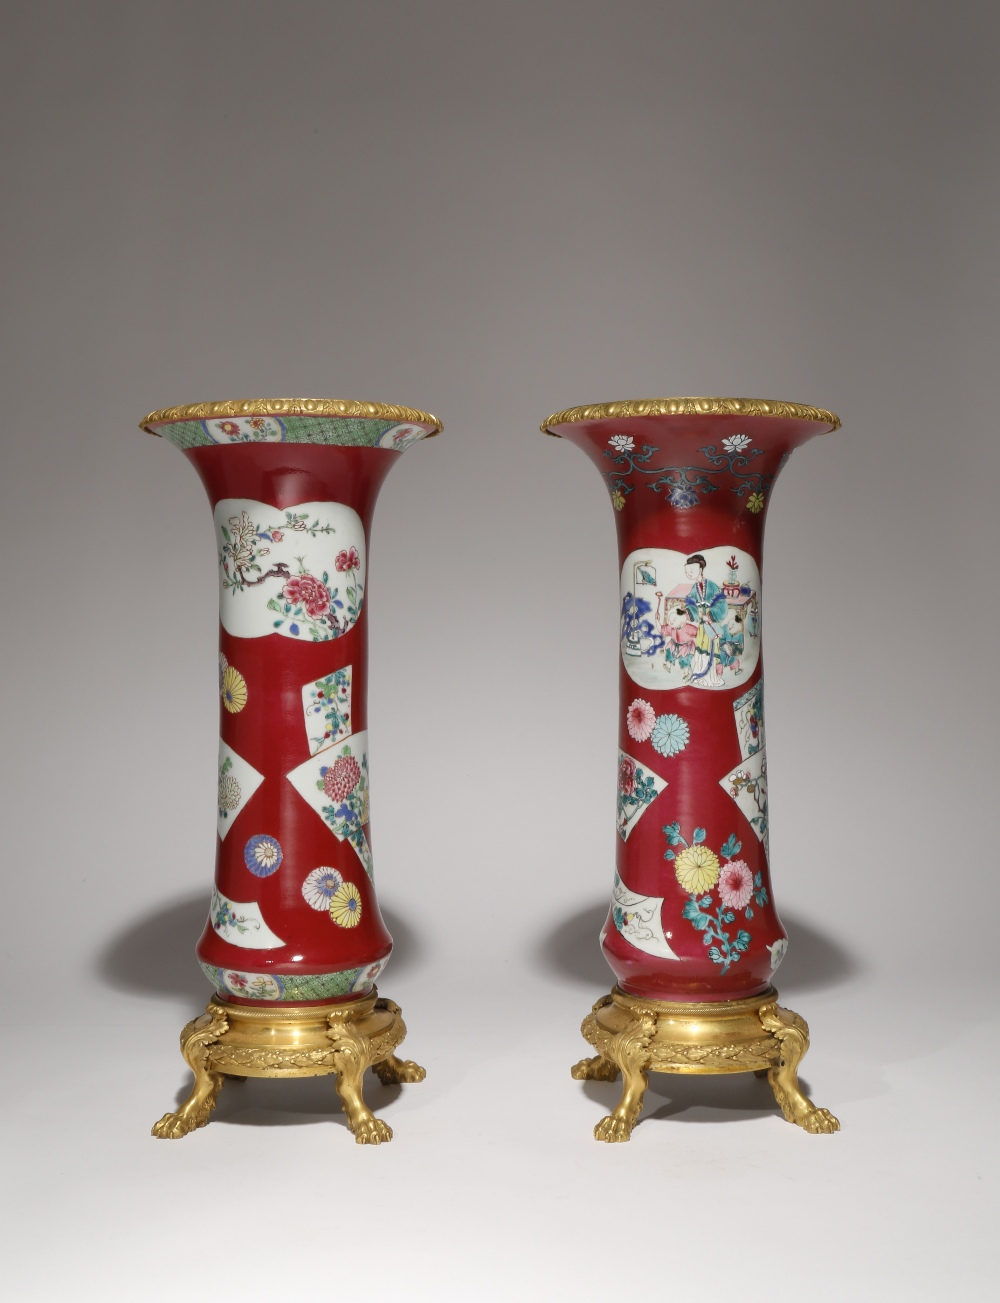 A NEAR PAIR OF CHINESE FAMILLE ROSE RUBY-GROUND ORMOLU-MOUNTED BEAKER VASES THE PORCELAIN 18TH